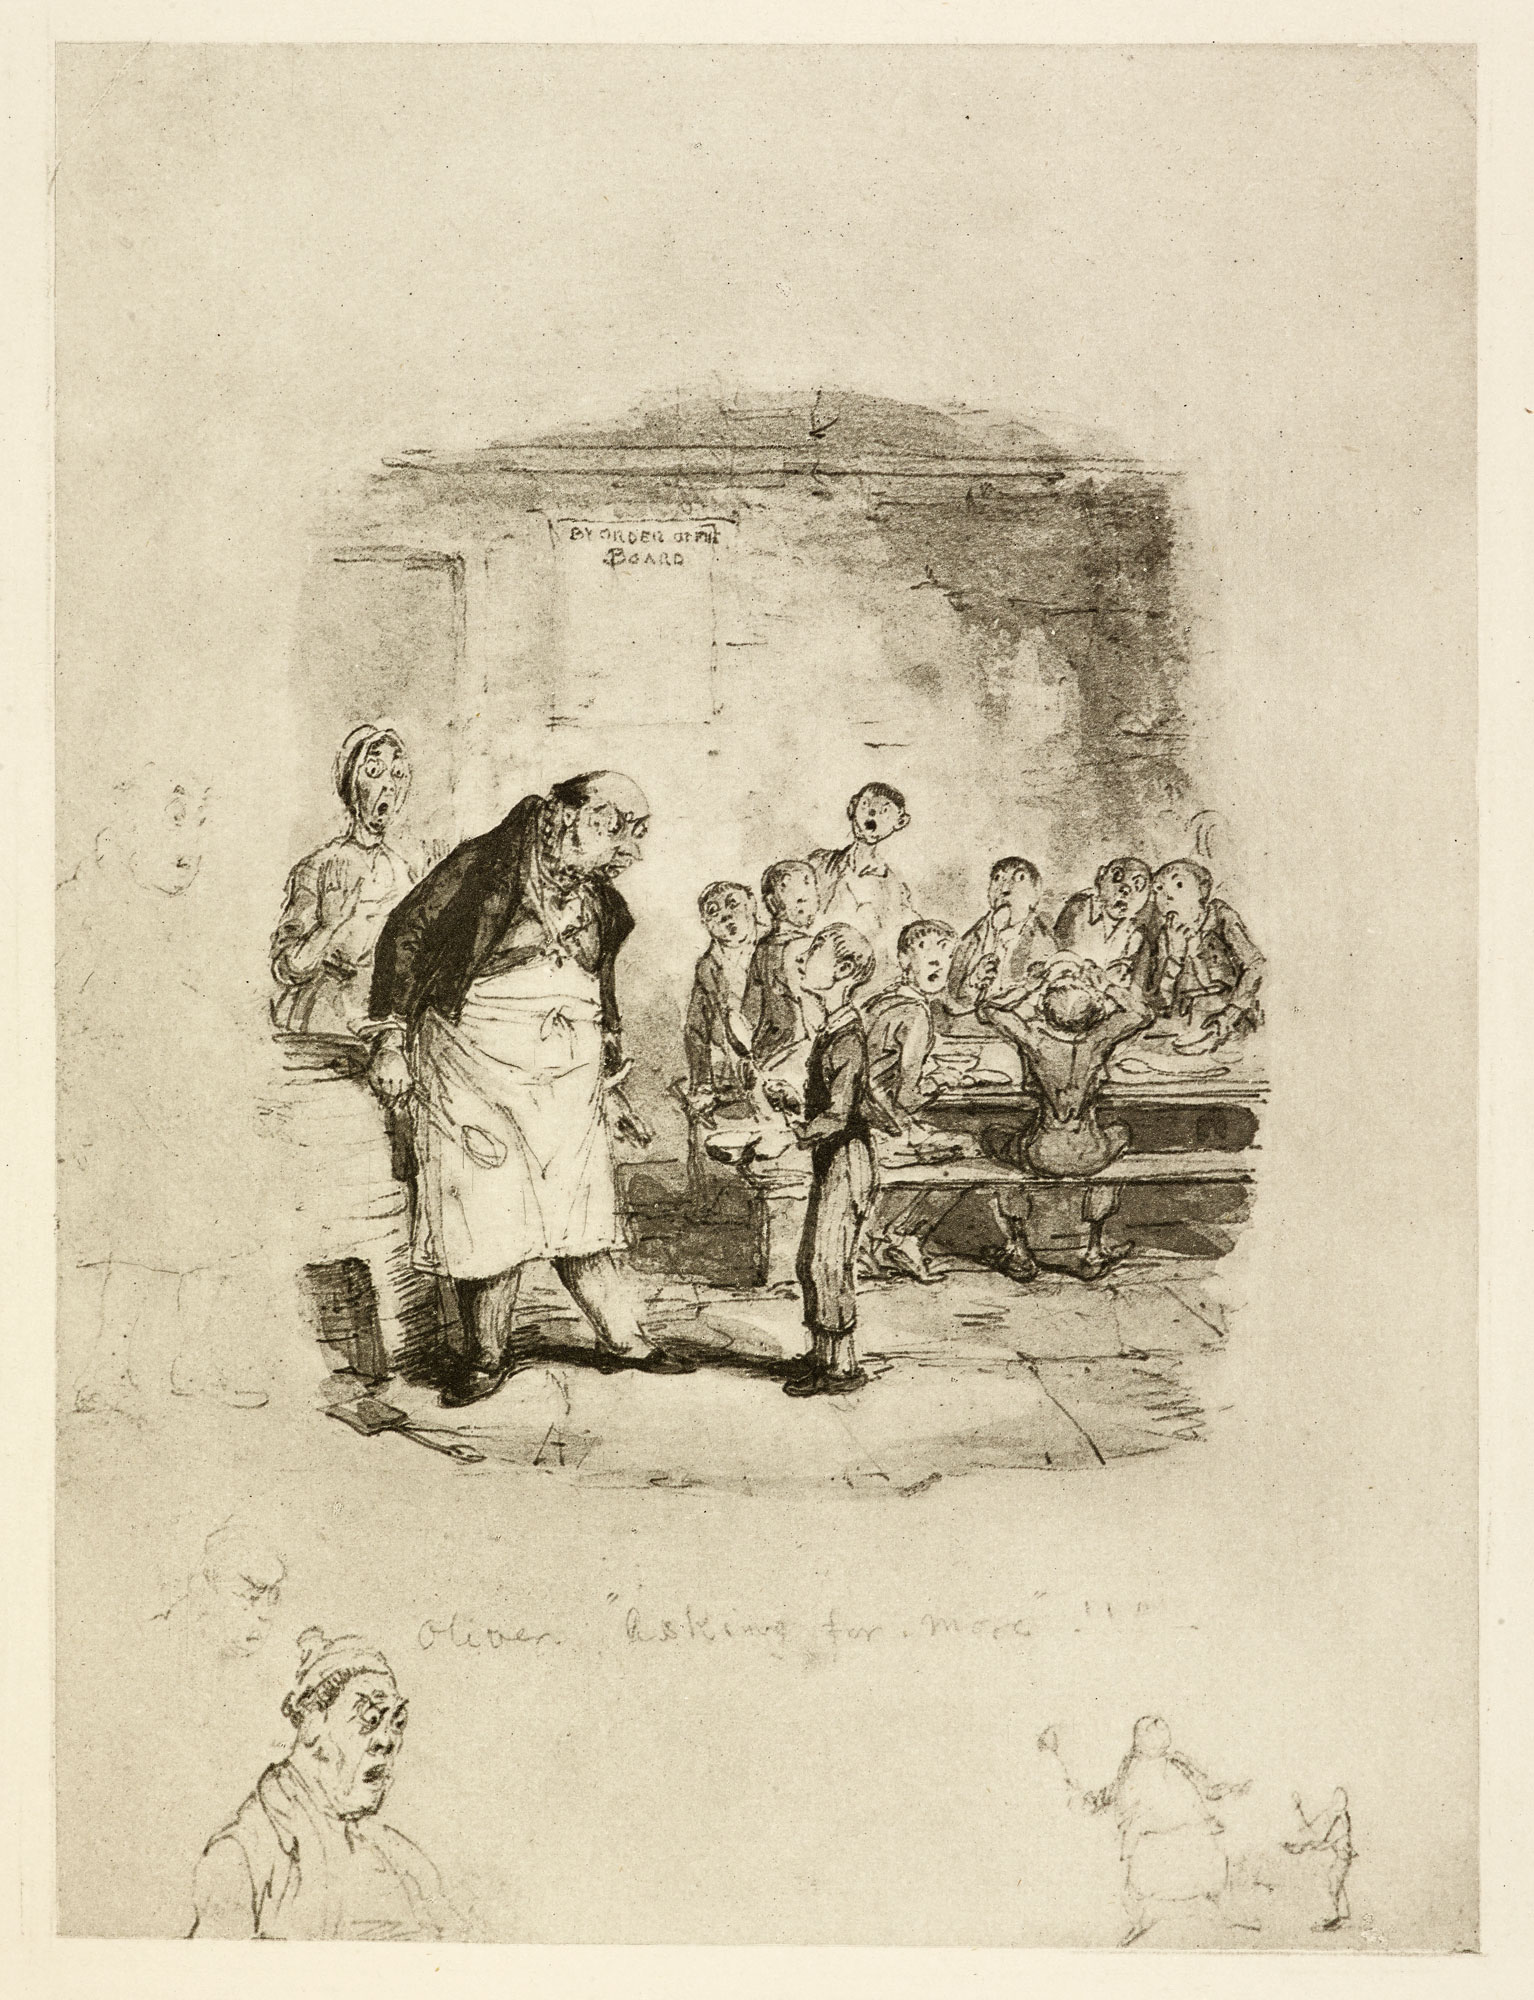 Oliver Asking for More' by George Cruikshank [page: 91]